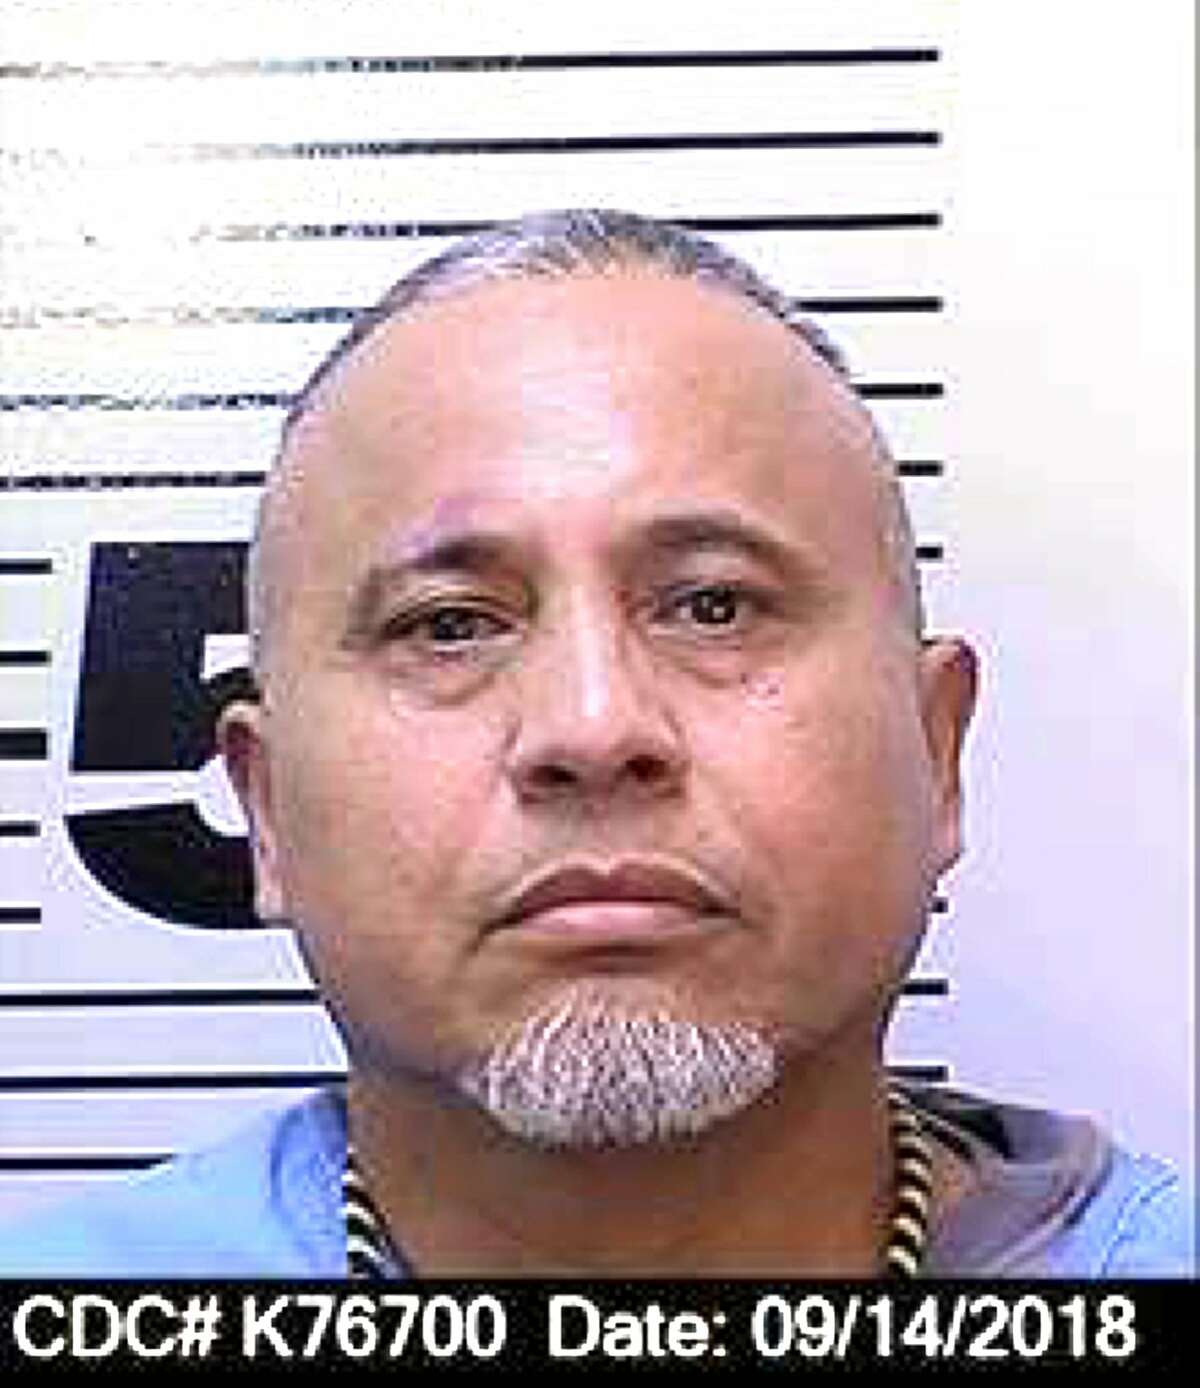 This Sept, 14, 2018 photo released by the California Department of Corrections and Rehabilitation shows inmate Herminio Serna. The CDCR says that Serna, 53, died late Monday, Dec. 3, 2018, at San Quentin State Prison and that the death is not being investigated as a homicide or suicide but that it will take an autopsy to determine how he died. He is one of three men sentenced to death for slayings during the Nuestra Familia gang's alleged efforts to take over the drug trade in San Jose. (California Department of Corrections and Rehabilitation via AP)